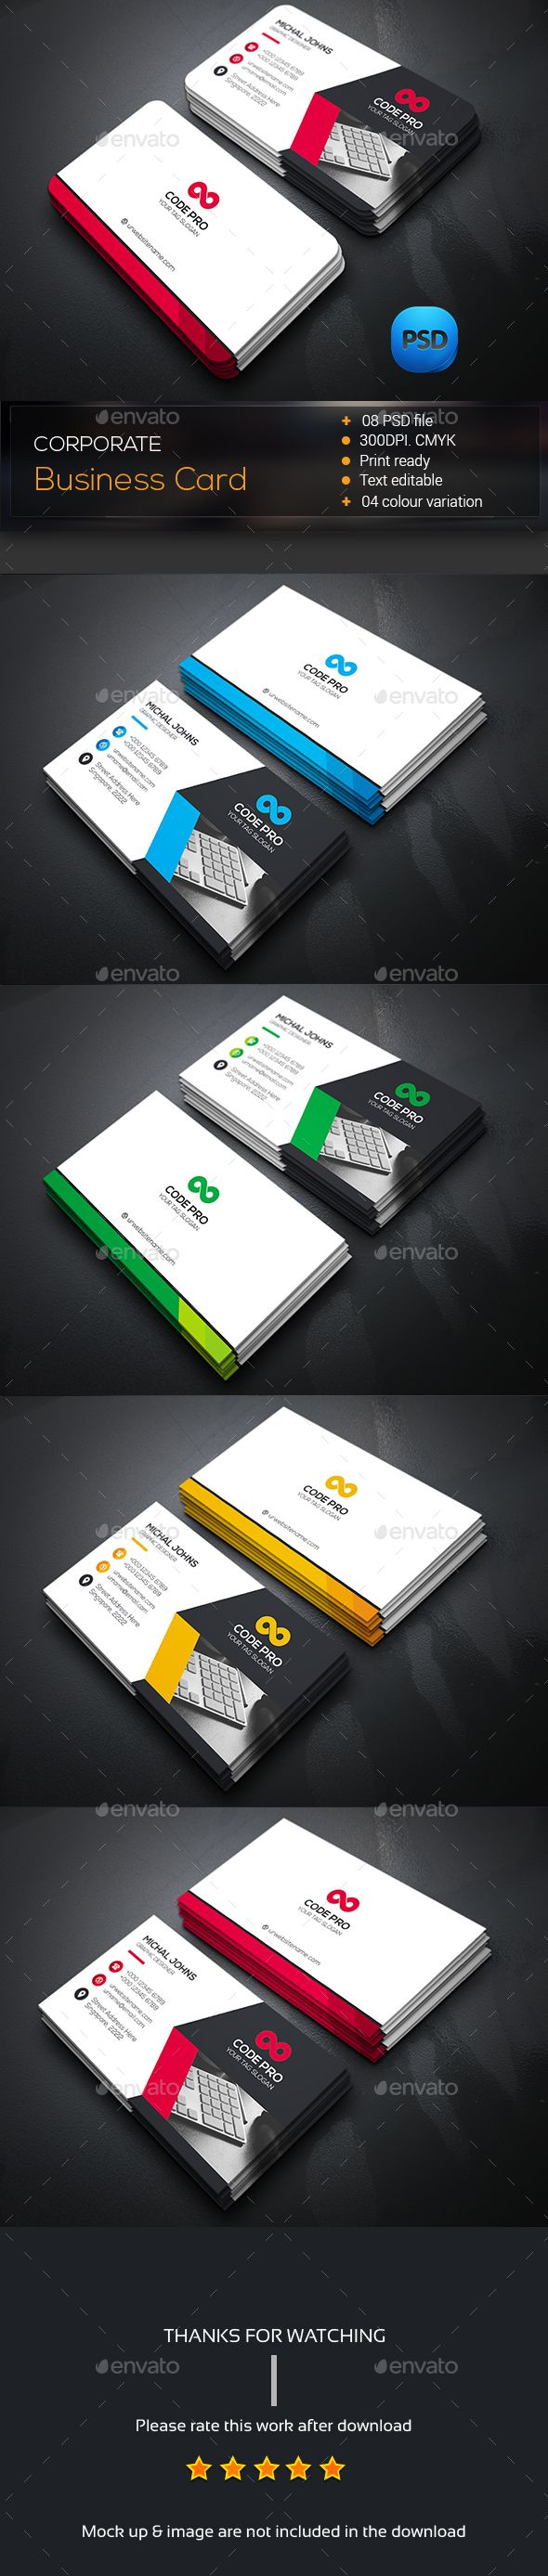 571 best business card inspiration images on pinterest business buy creative business card by zeropixels on graphicriver features easy customizable and editable business card in with bleed cmyk color design in 300 dpi reheart Image collections